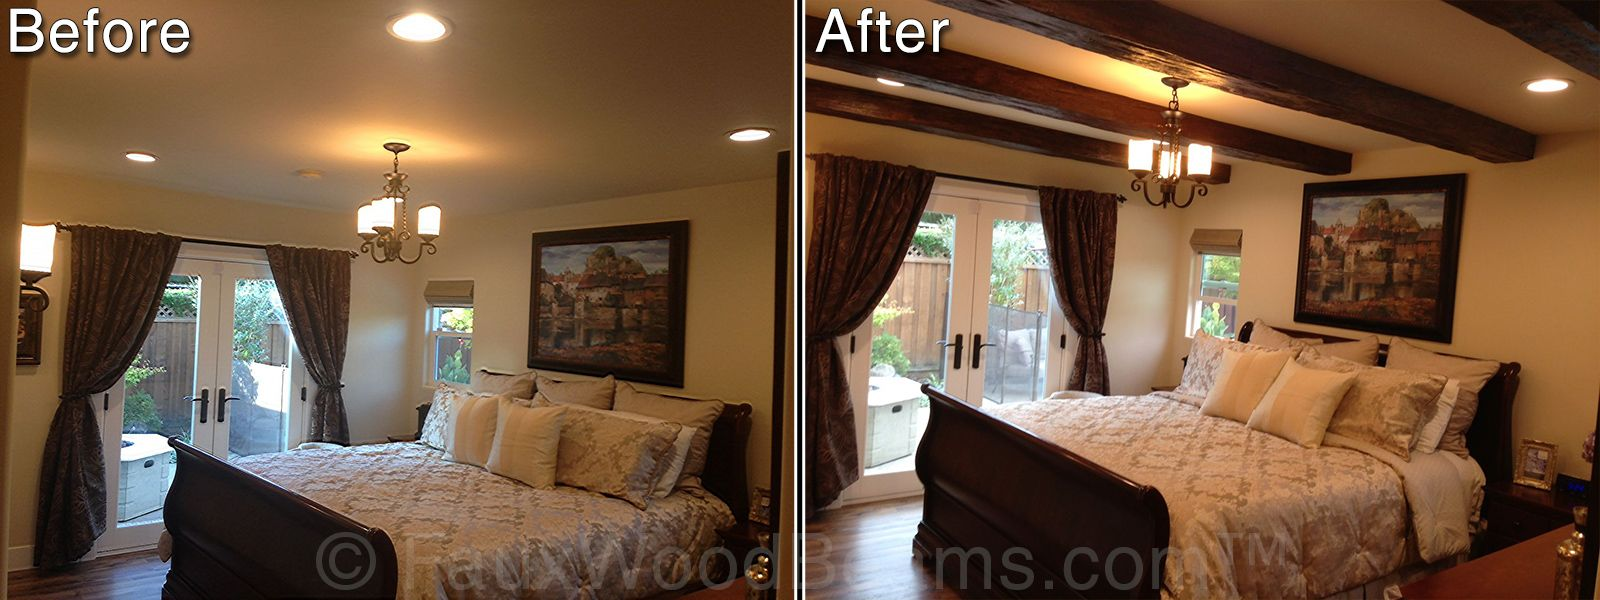 Before And After Picture Of A Bedroom Design With Imitation Wood Beams Installed Condo